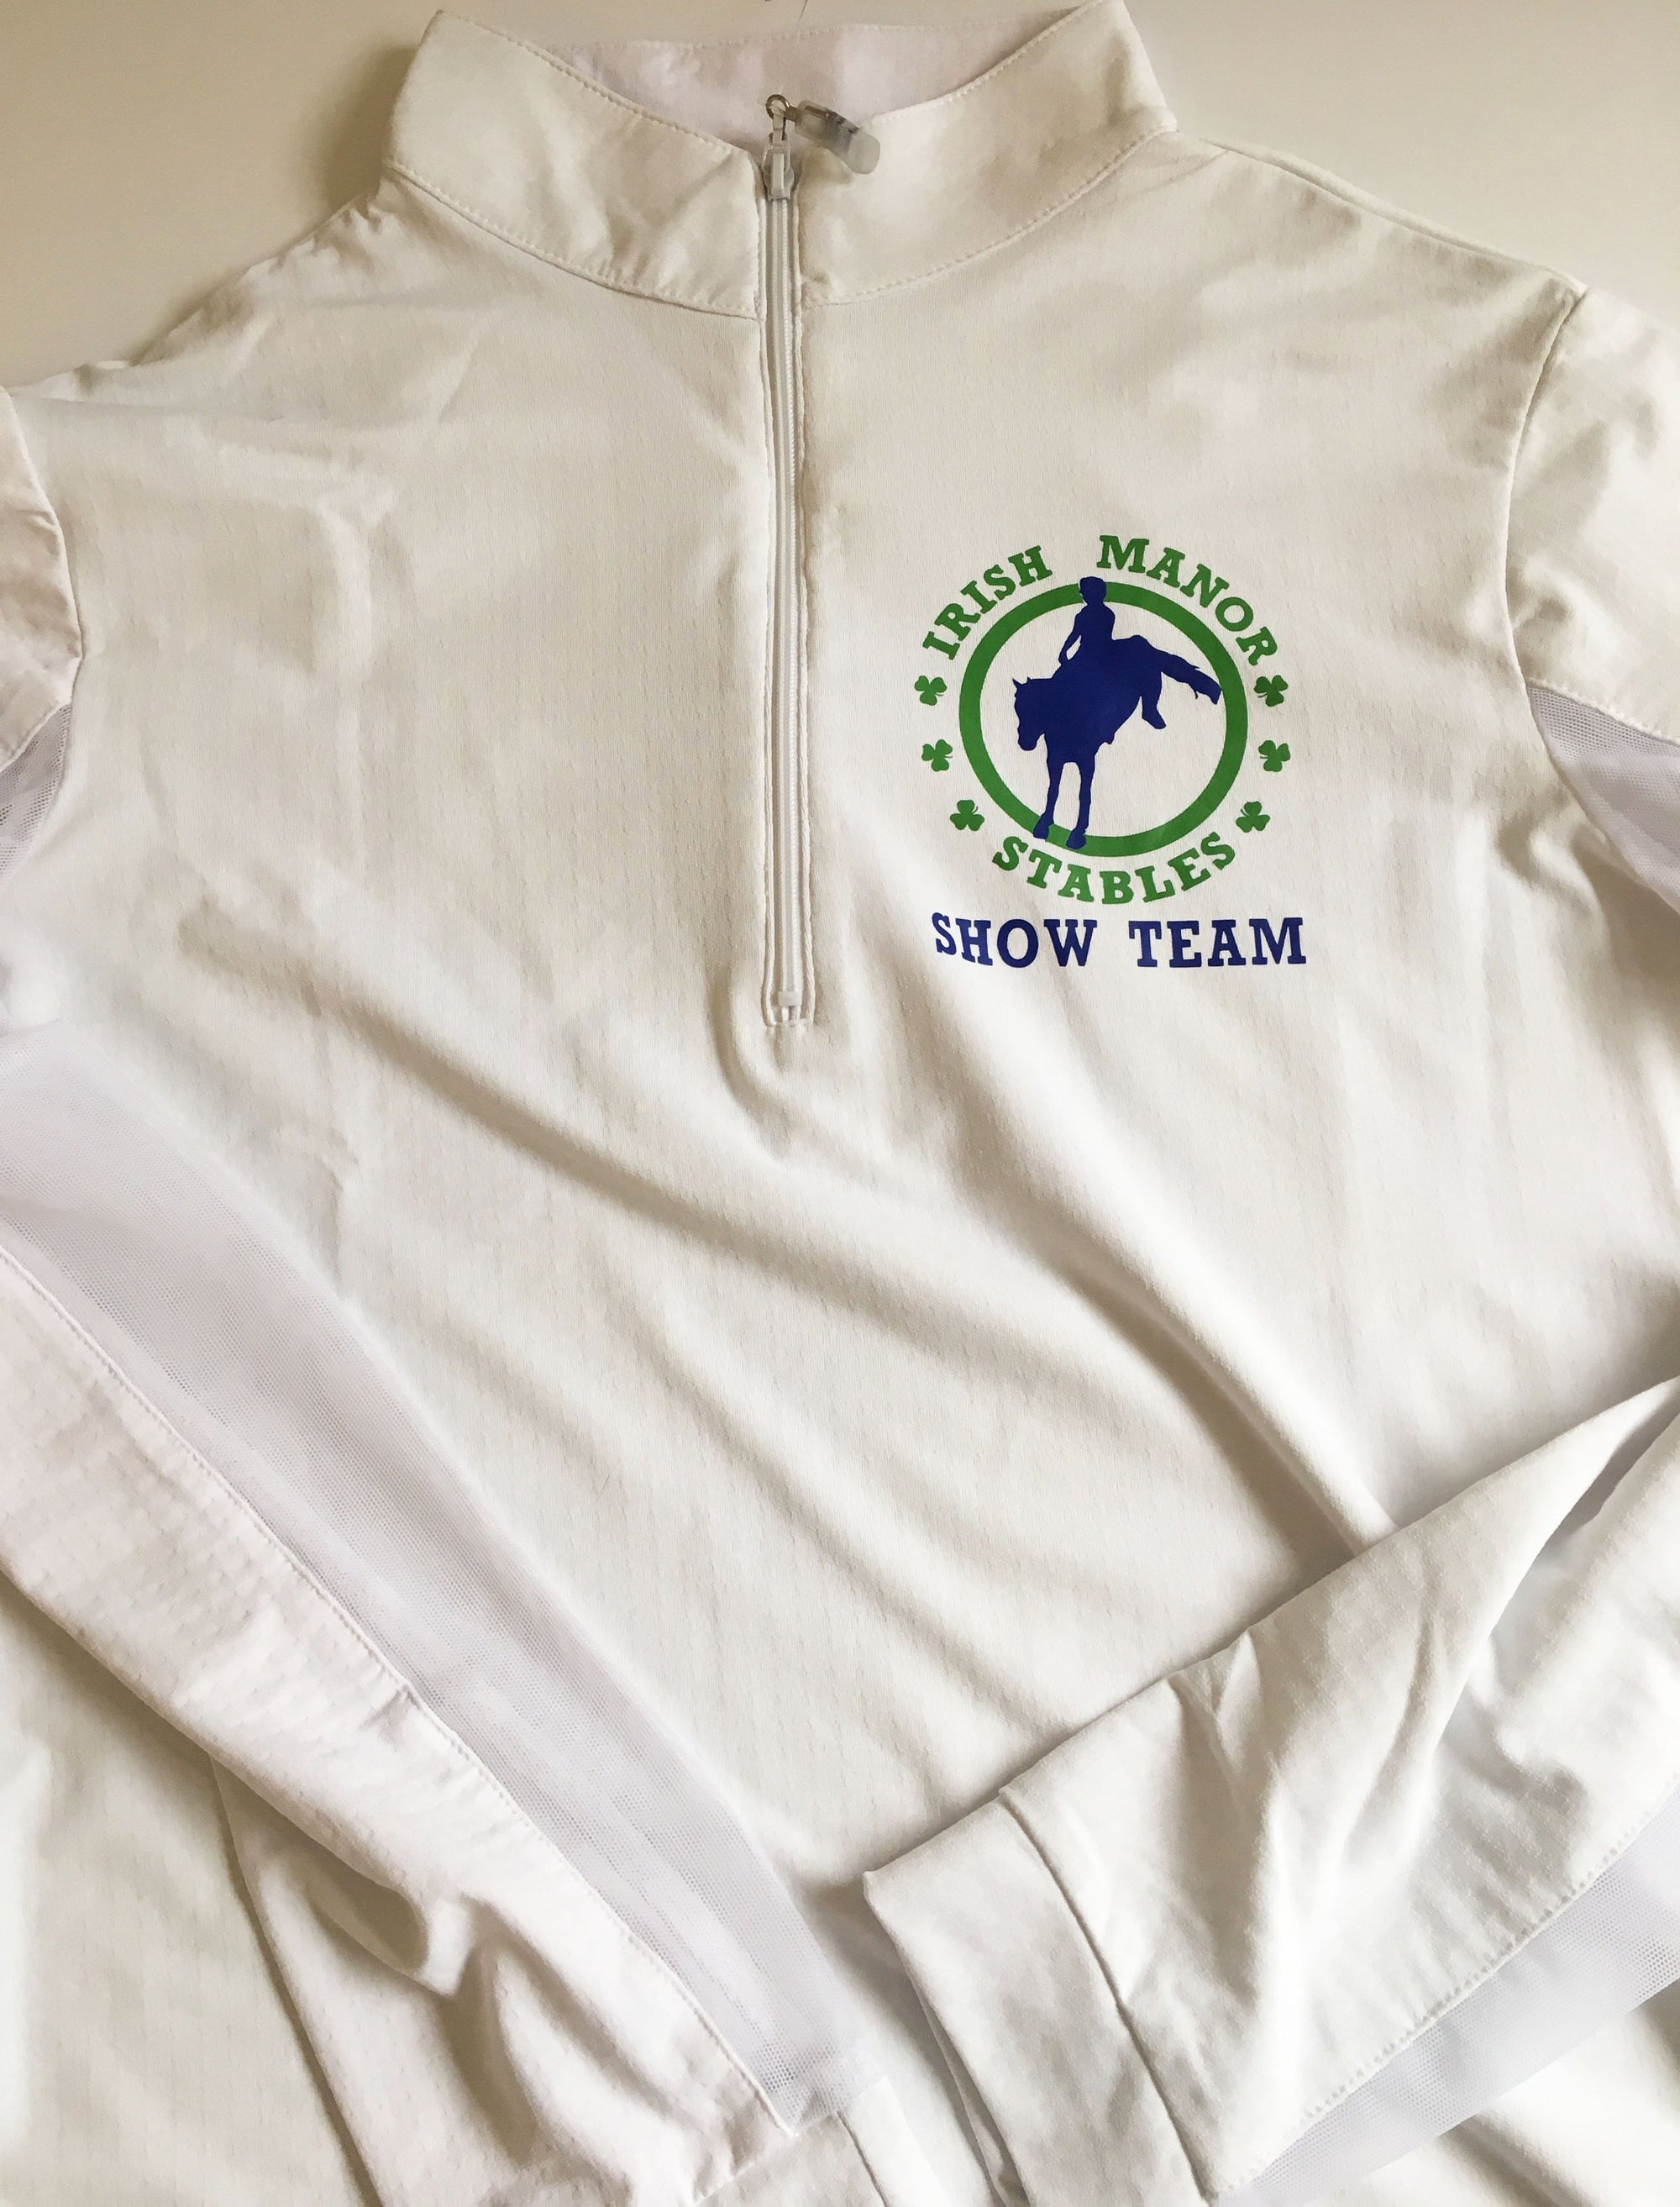 Equestrian Team Apparel Custom Team Shirts Youth 8/10 Irish Manor Show Team equestrian team apparel online tack store mobile tack store custom farm apparel custom show stable clothing equestrian lifestyle horse show clothing riding clothes horses equestrian tack store